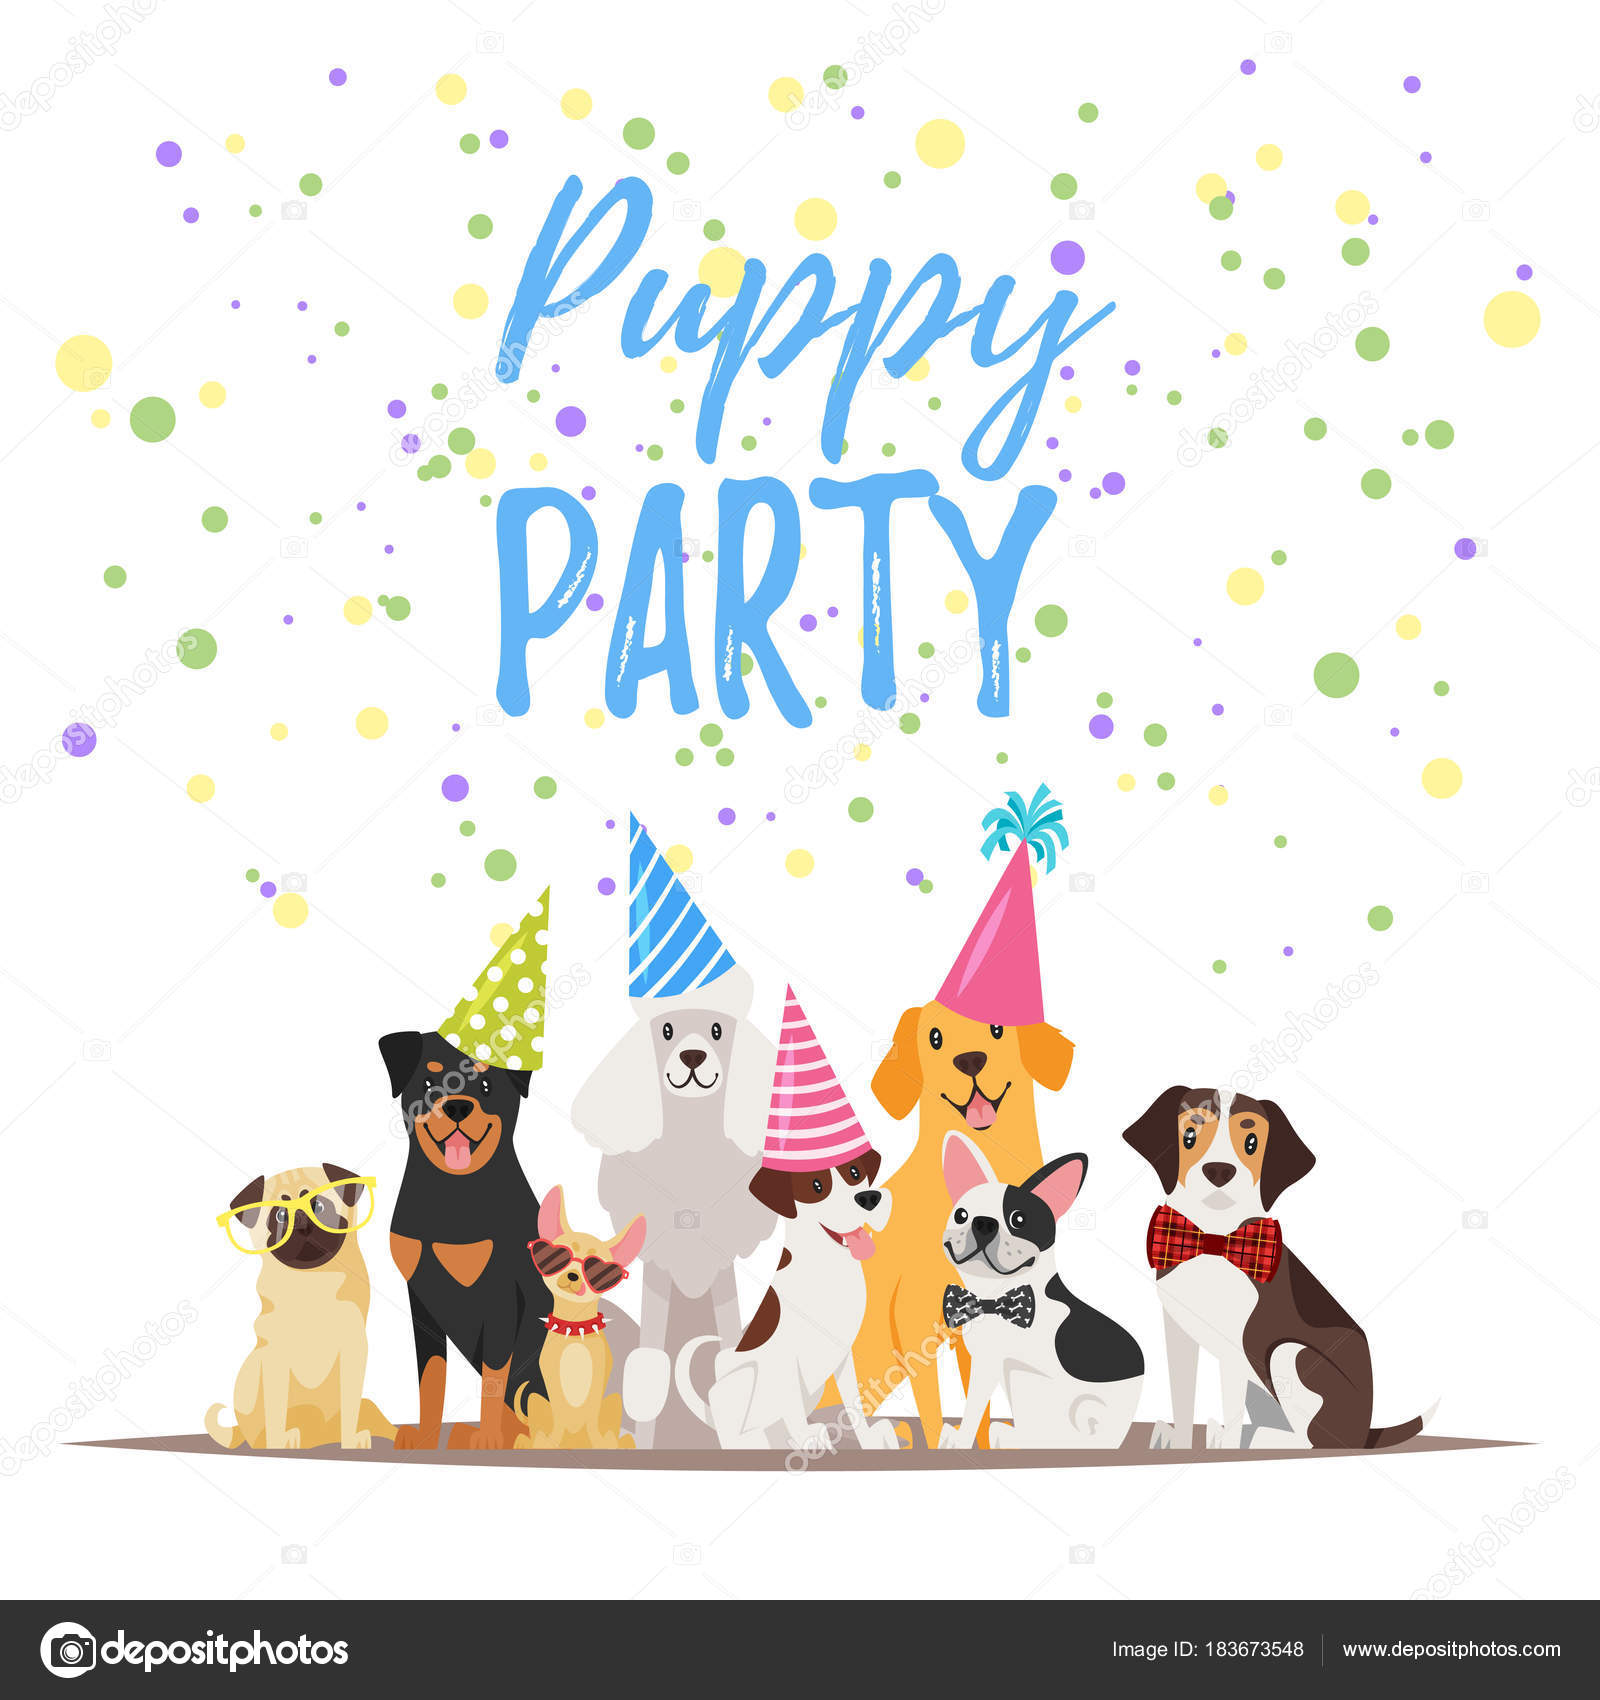 Dog birthday party greeting card stock vector tkronalter9 dog birthday party greeting card stock vector kristyandbryce Choice Image